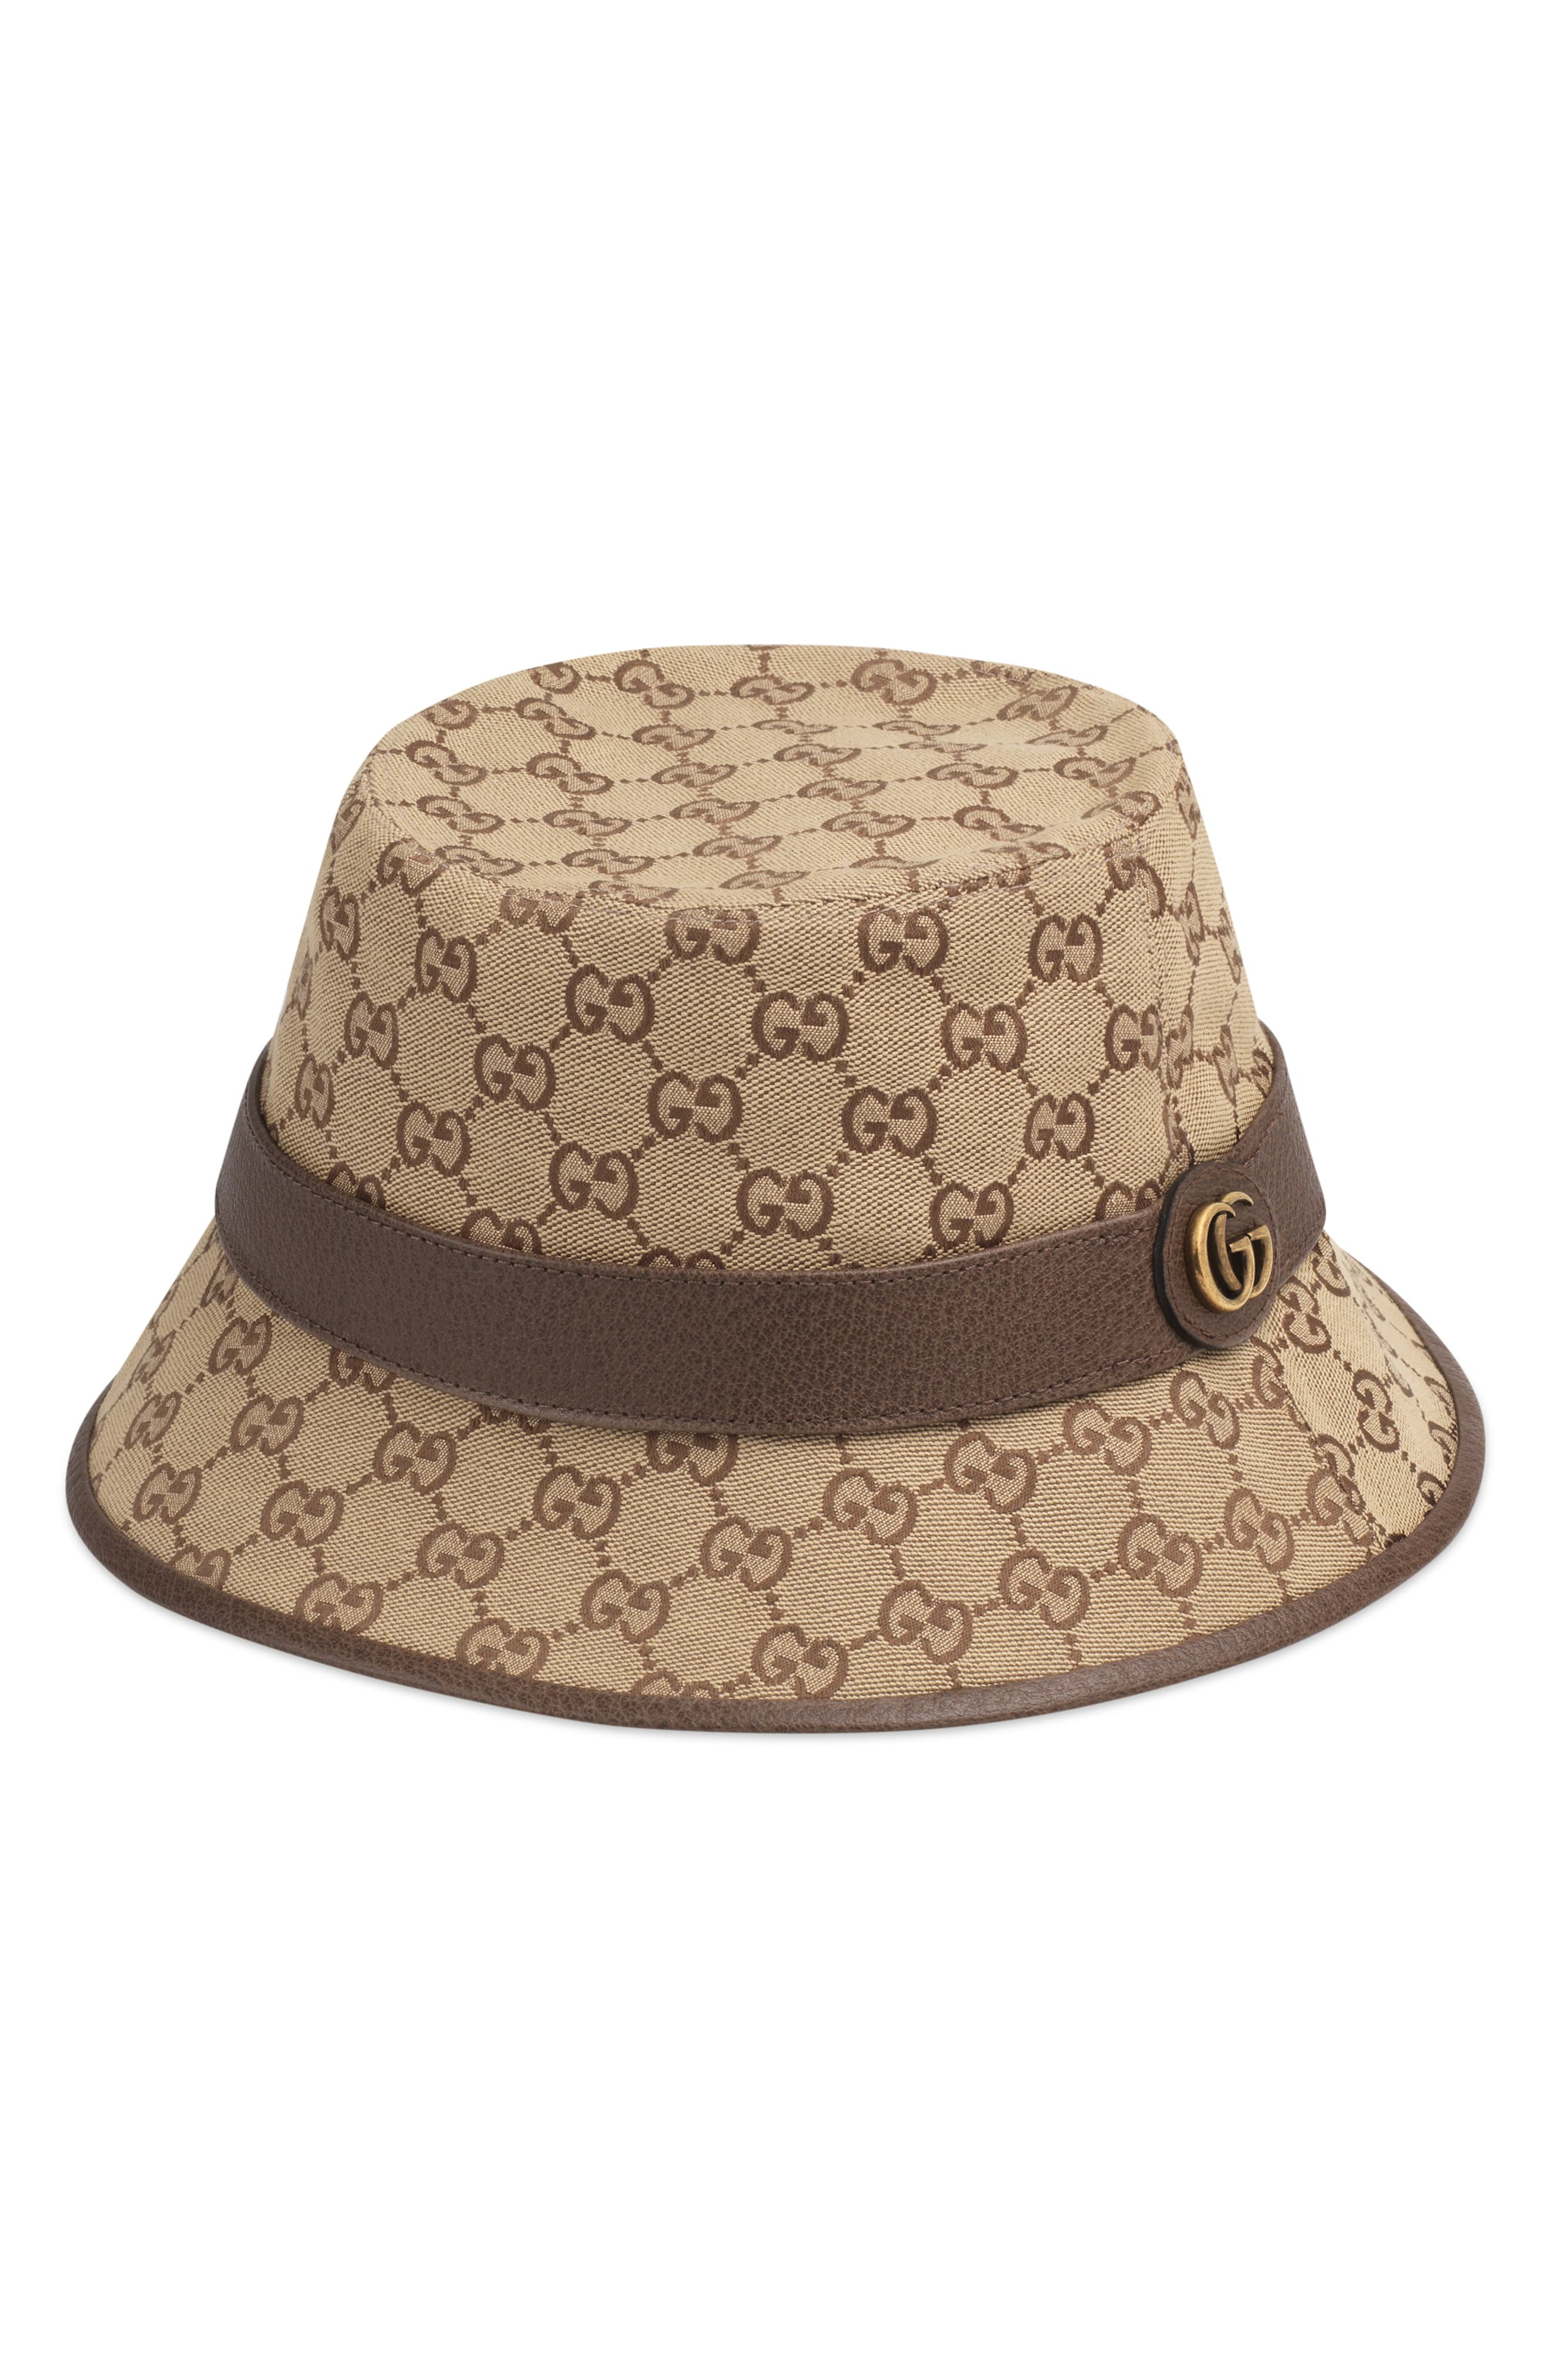 e4a761966 Men's Gucci Gg Bucket Hat -